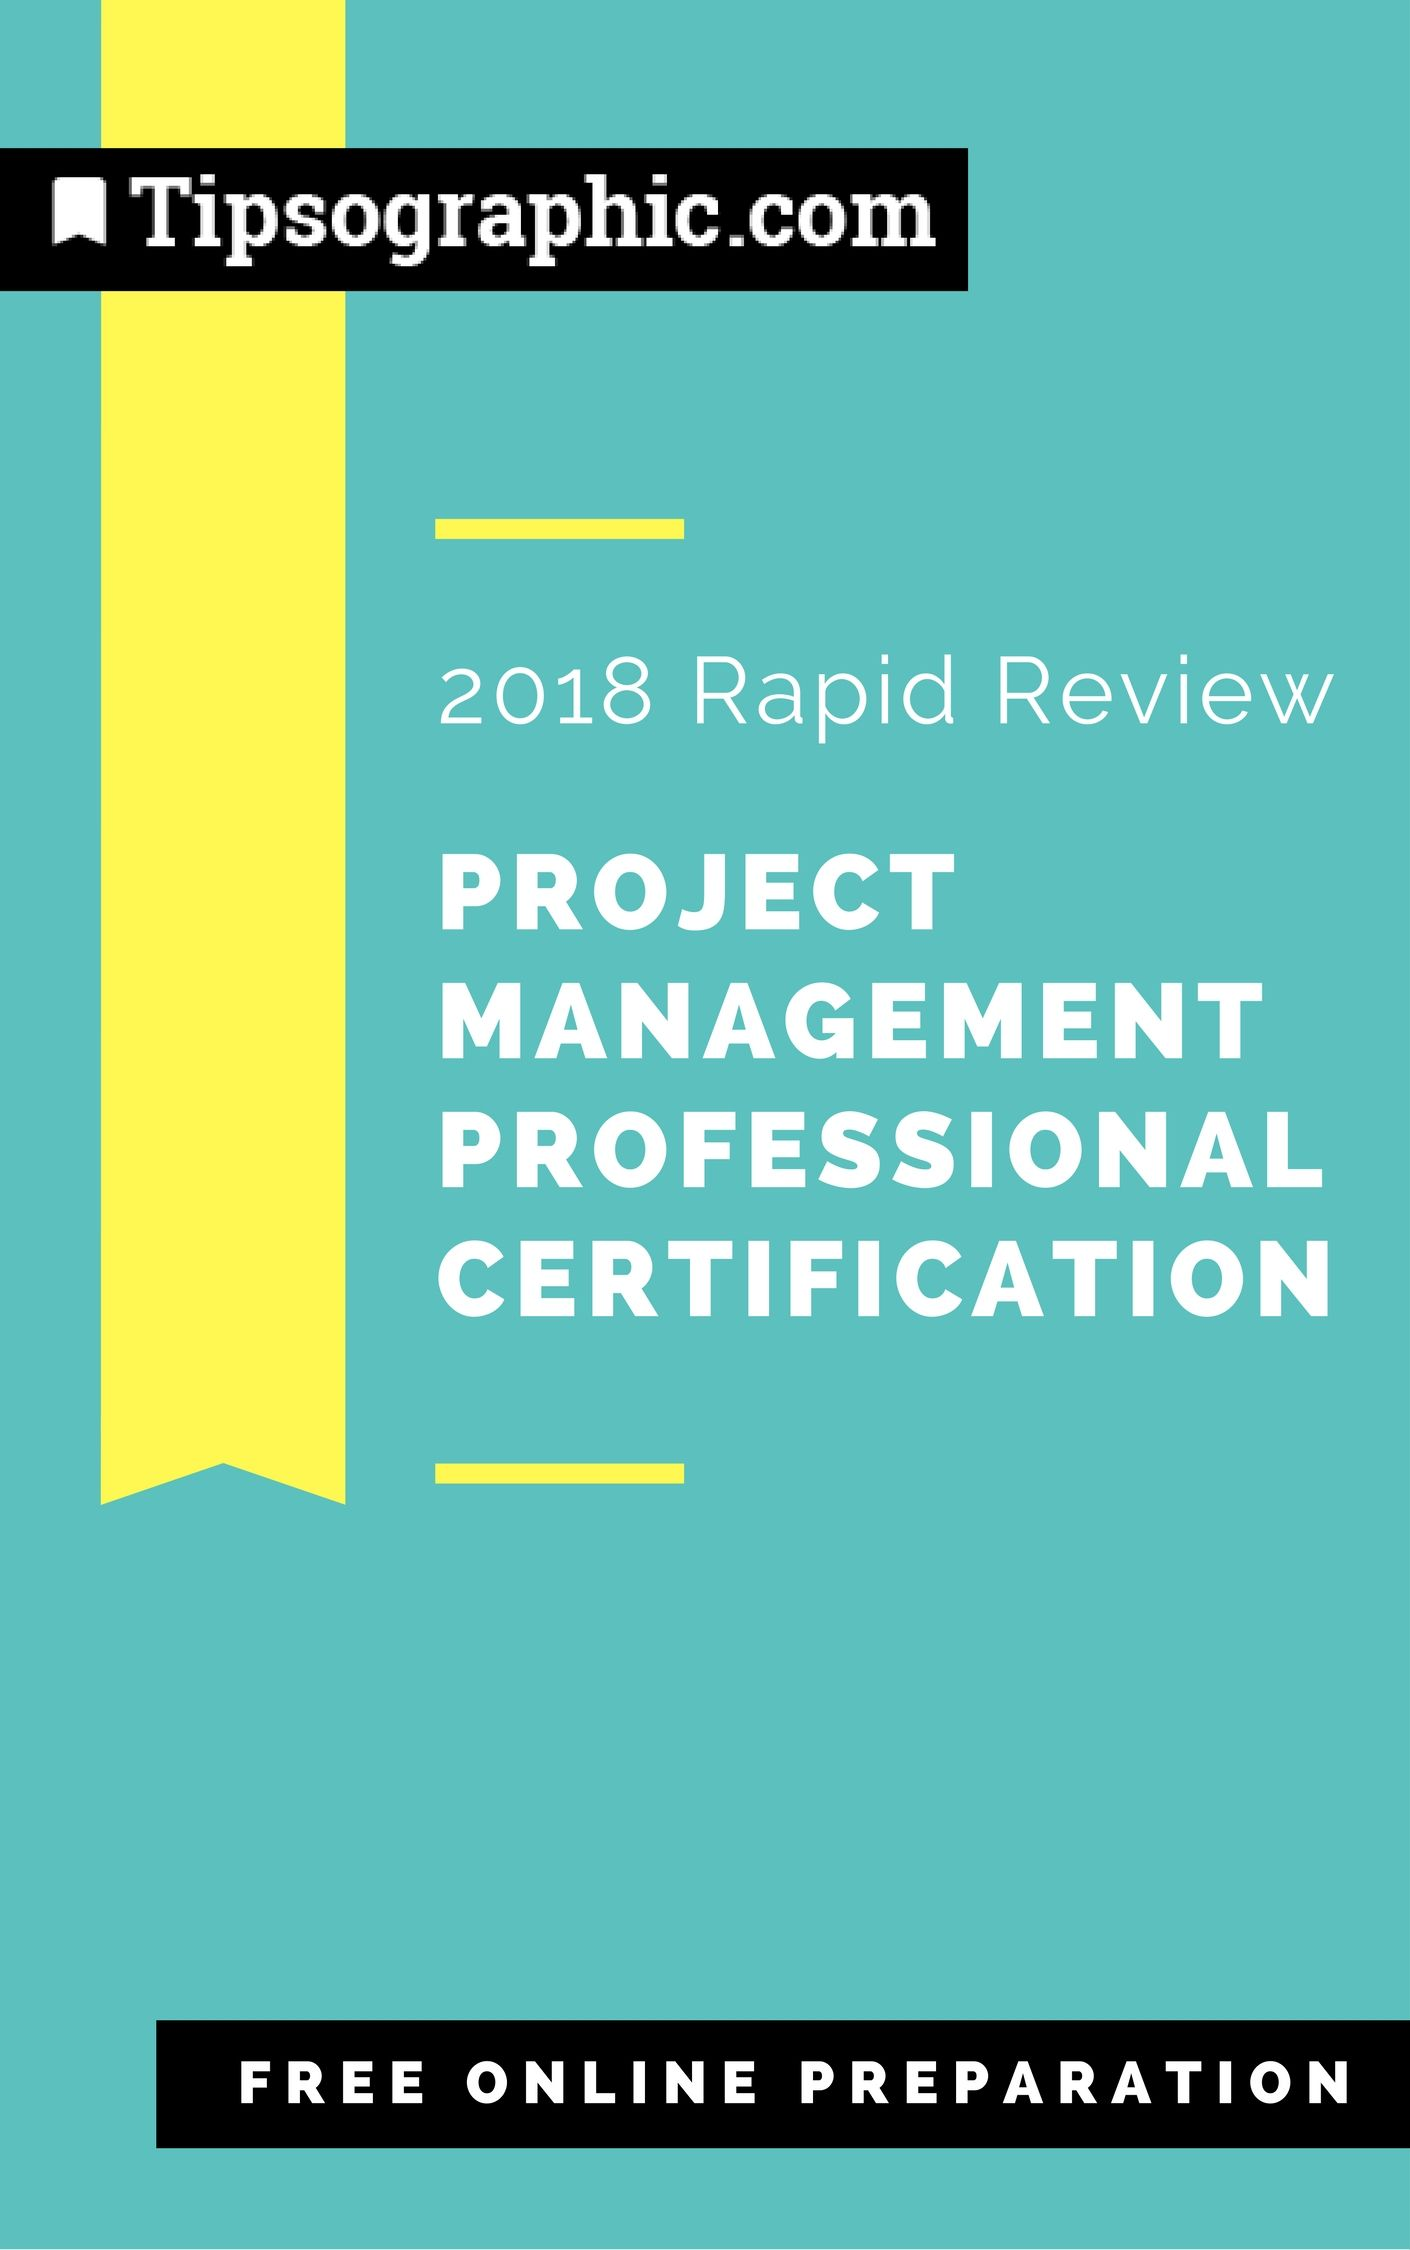 Project management professional certification 2018 rapid review project management professional certification 2018 rapid review free online preparation based on pmbok6 1betcityfo Images